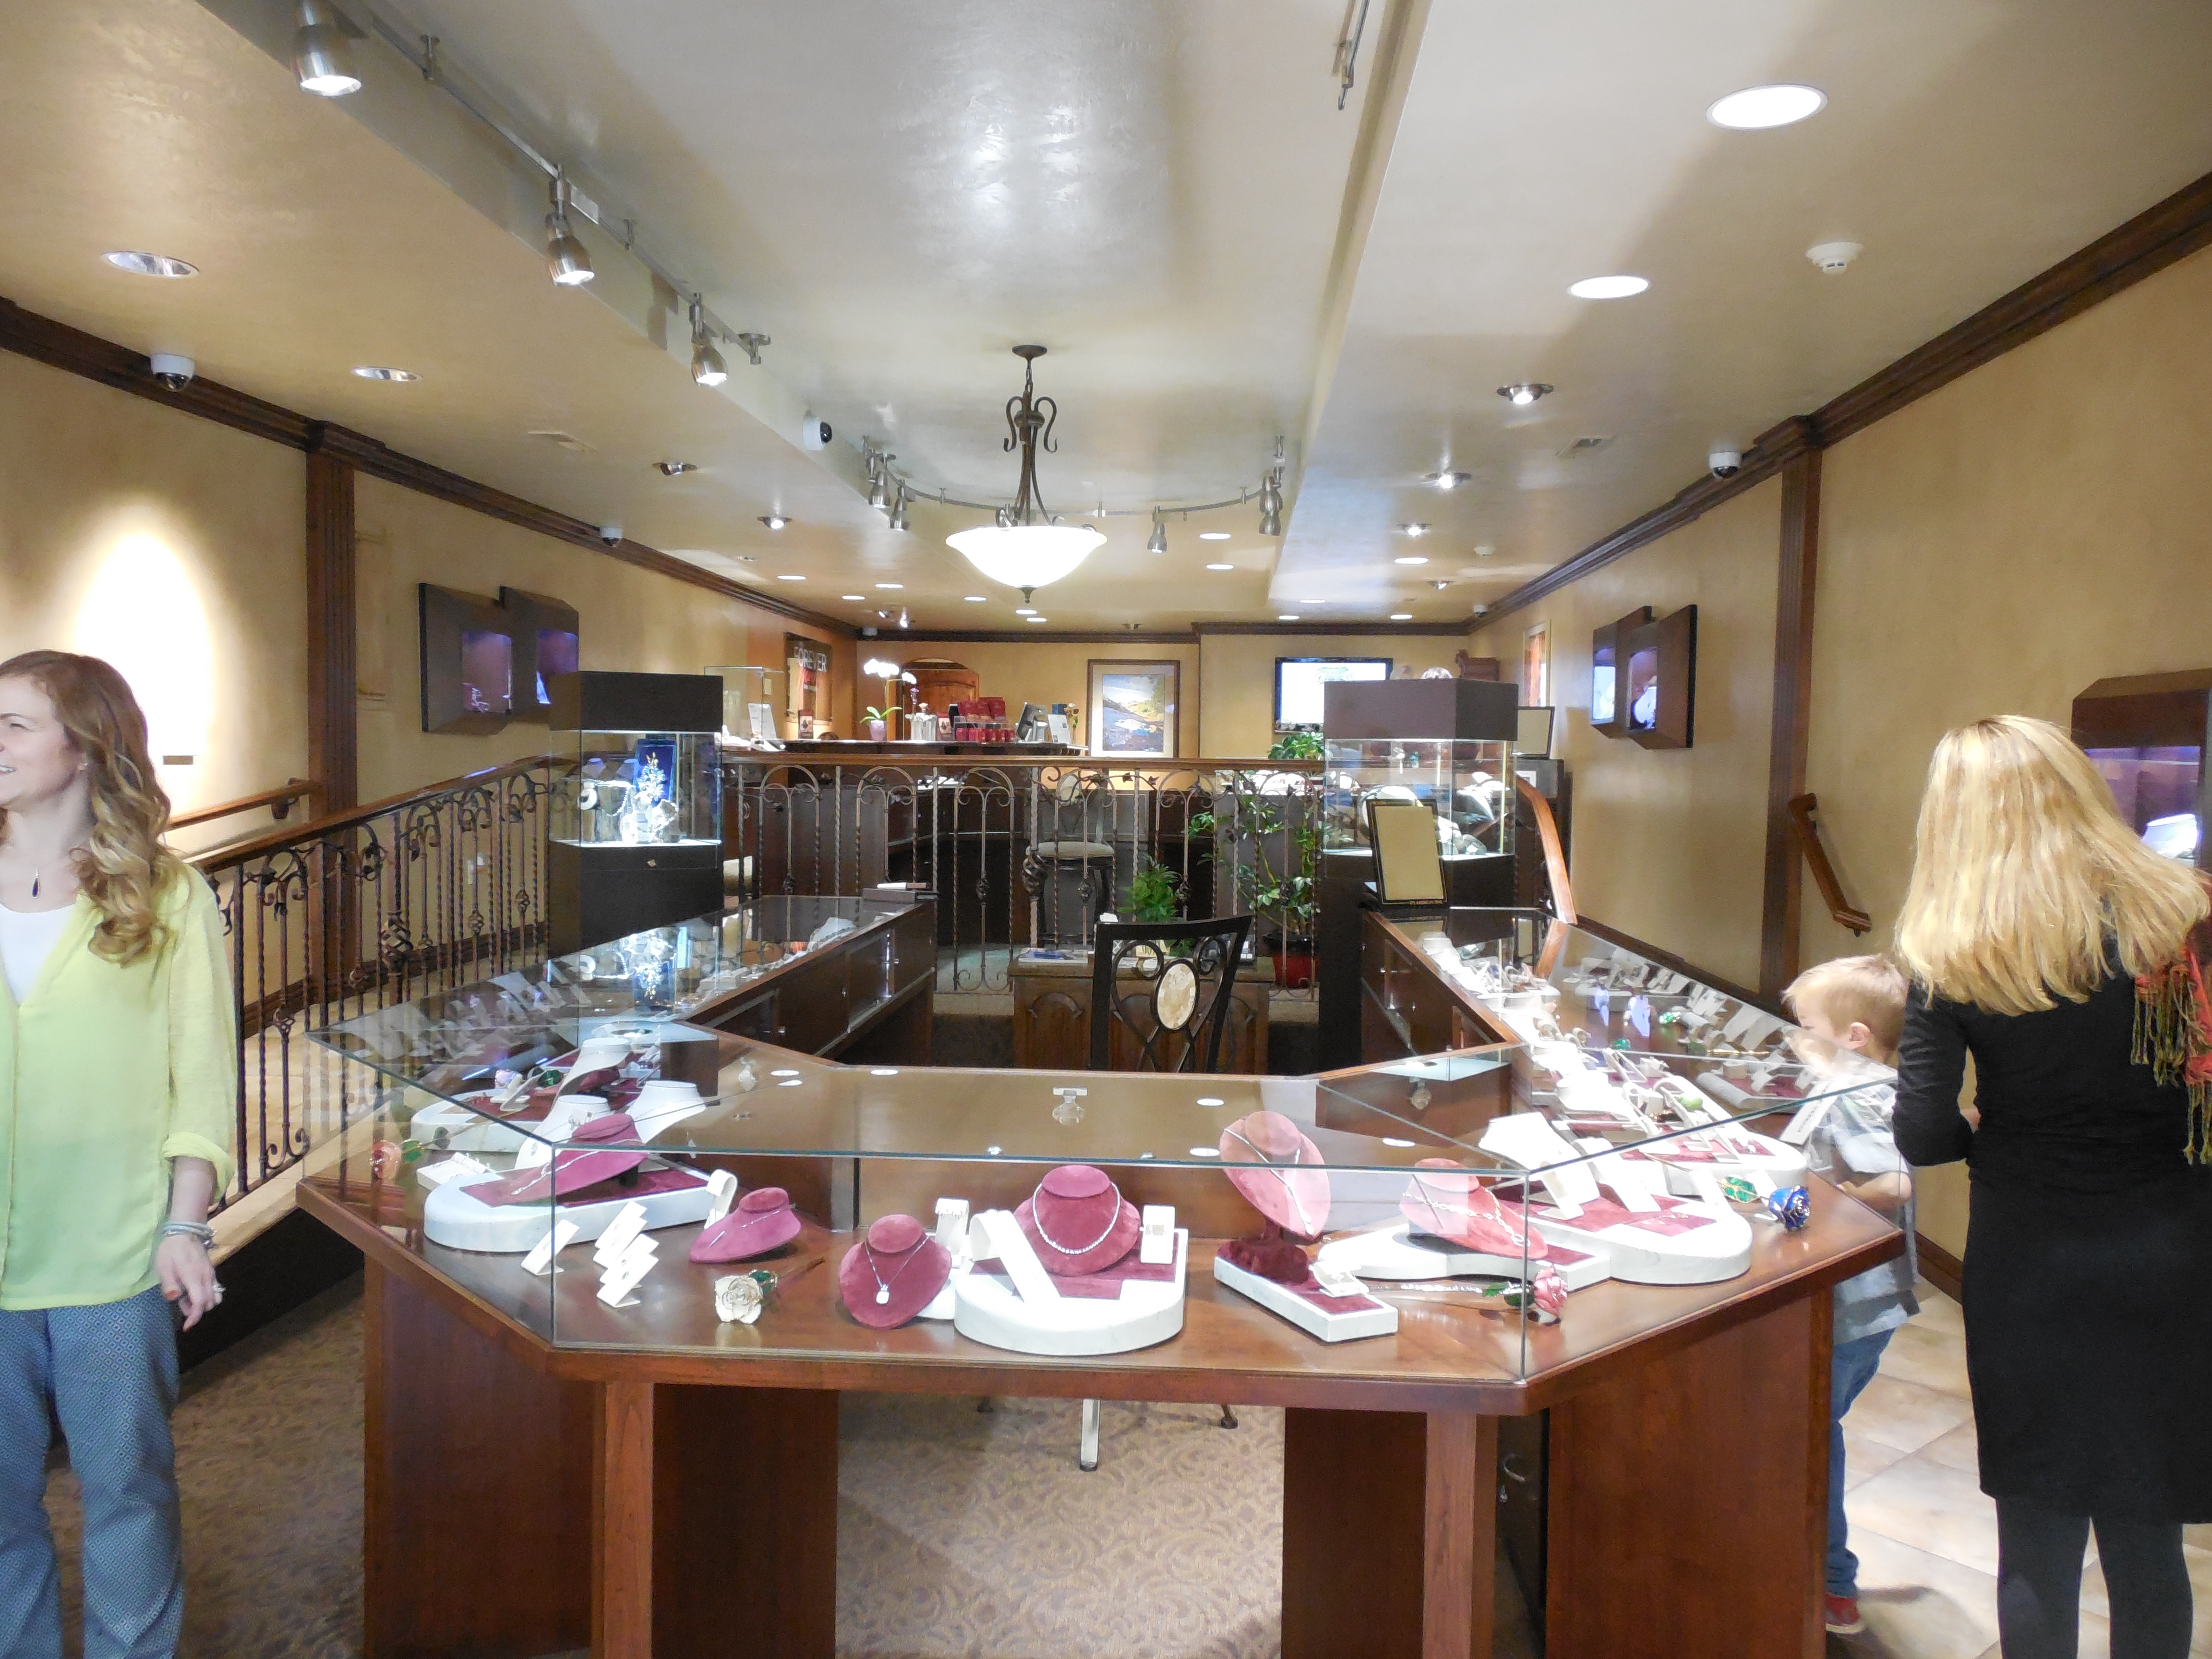 Interior of Forever Young Fine Jewelers, St. George, Utah, Nov. 17, 2016 | Photo by Julie Applegate, St. George News